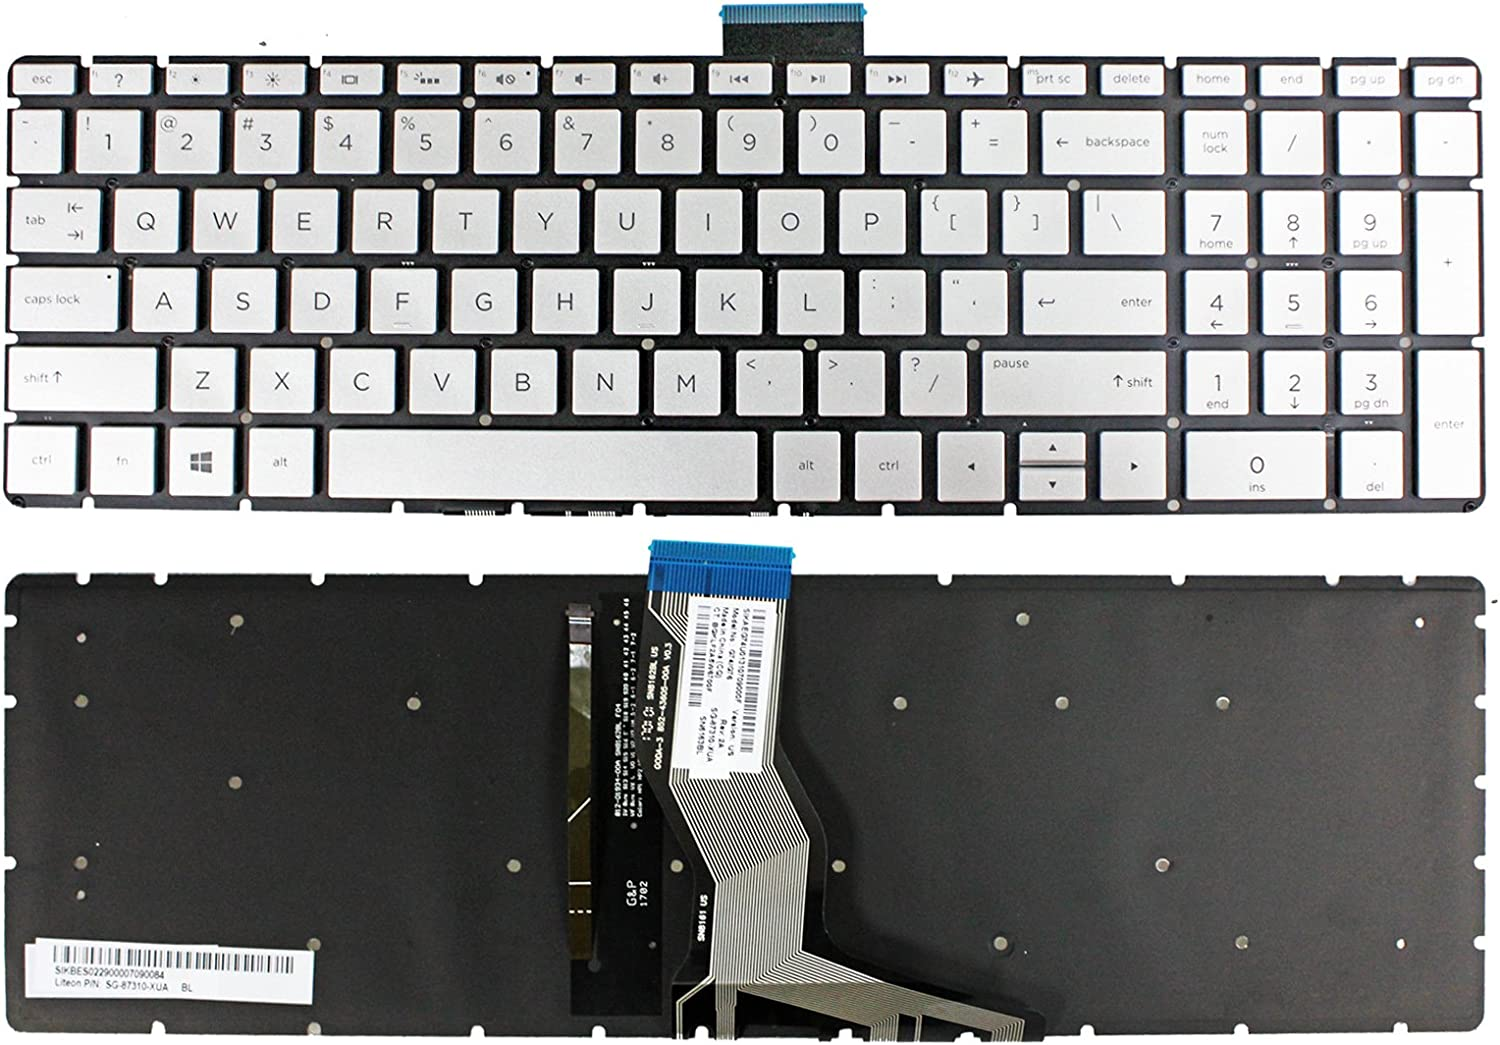 Zahara Laptop Keyboard with Backlight Replacement for HP 15-cc183cl 15-cc184cl 15-cc187cl 15-cc123cl 15-cc154cl HP15-cc565nr 15-cc566nr 5-cc158nr 15-cc159nr 15-cc010nr